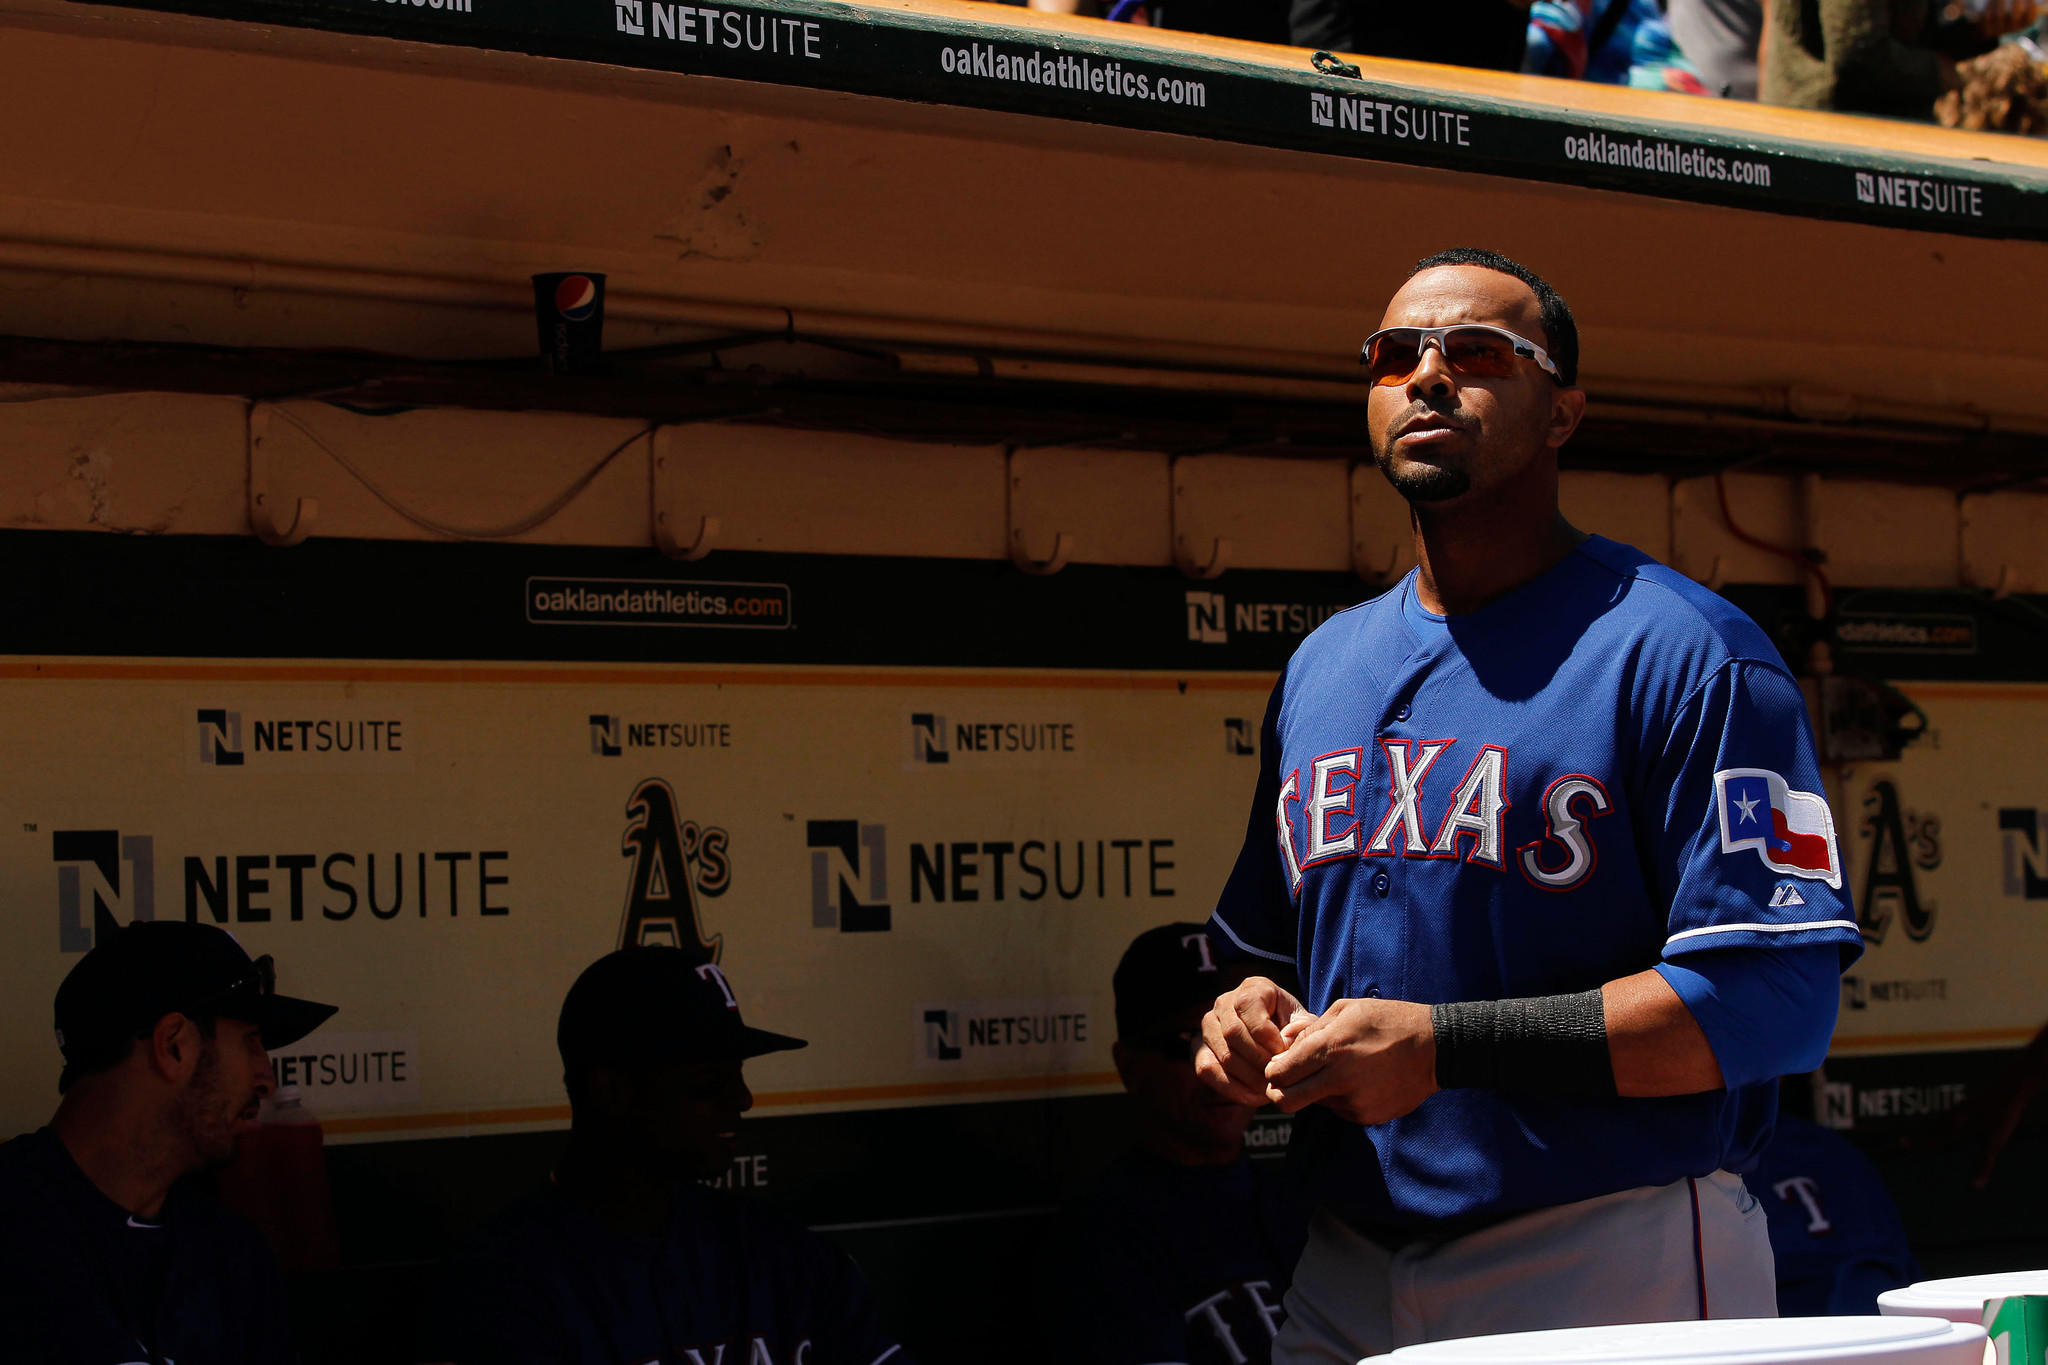 Outfielder Nelson Cruz looks on from the dugout before the start of a Texas Rangers game last season. Cruz agreed to a one-year deal with the Orioles on Saturday, according to industry sources.